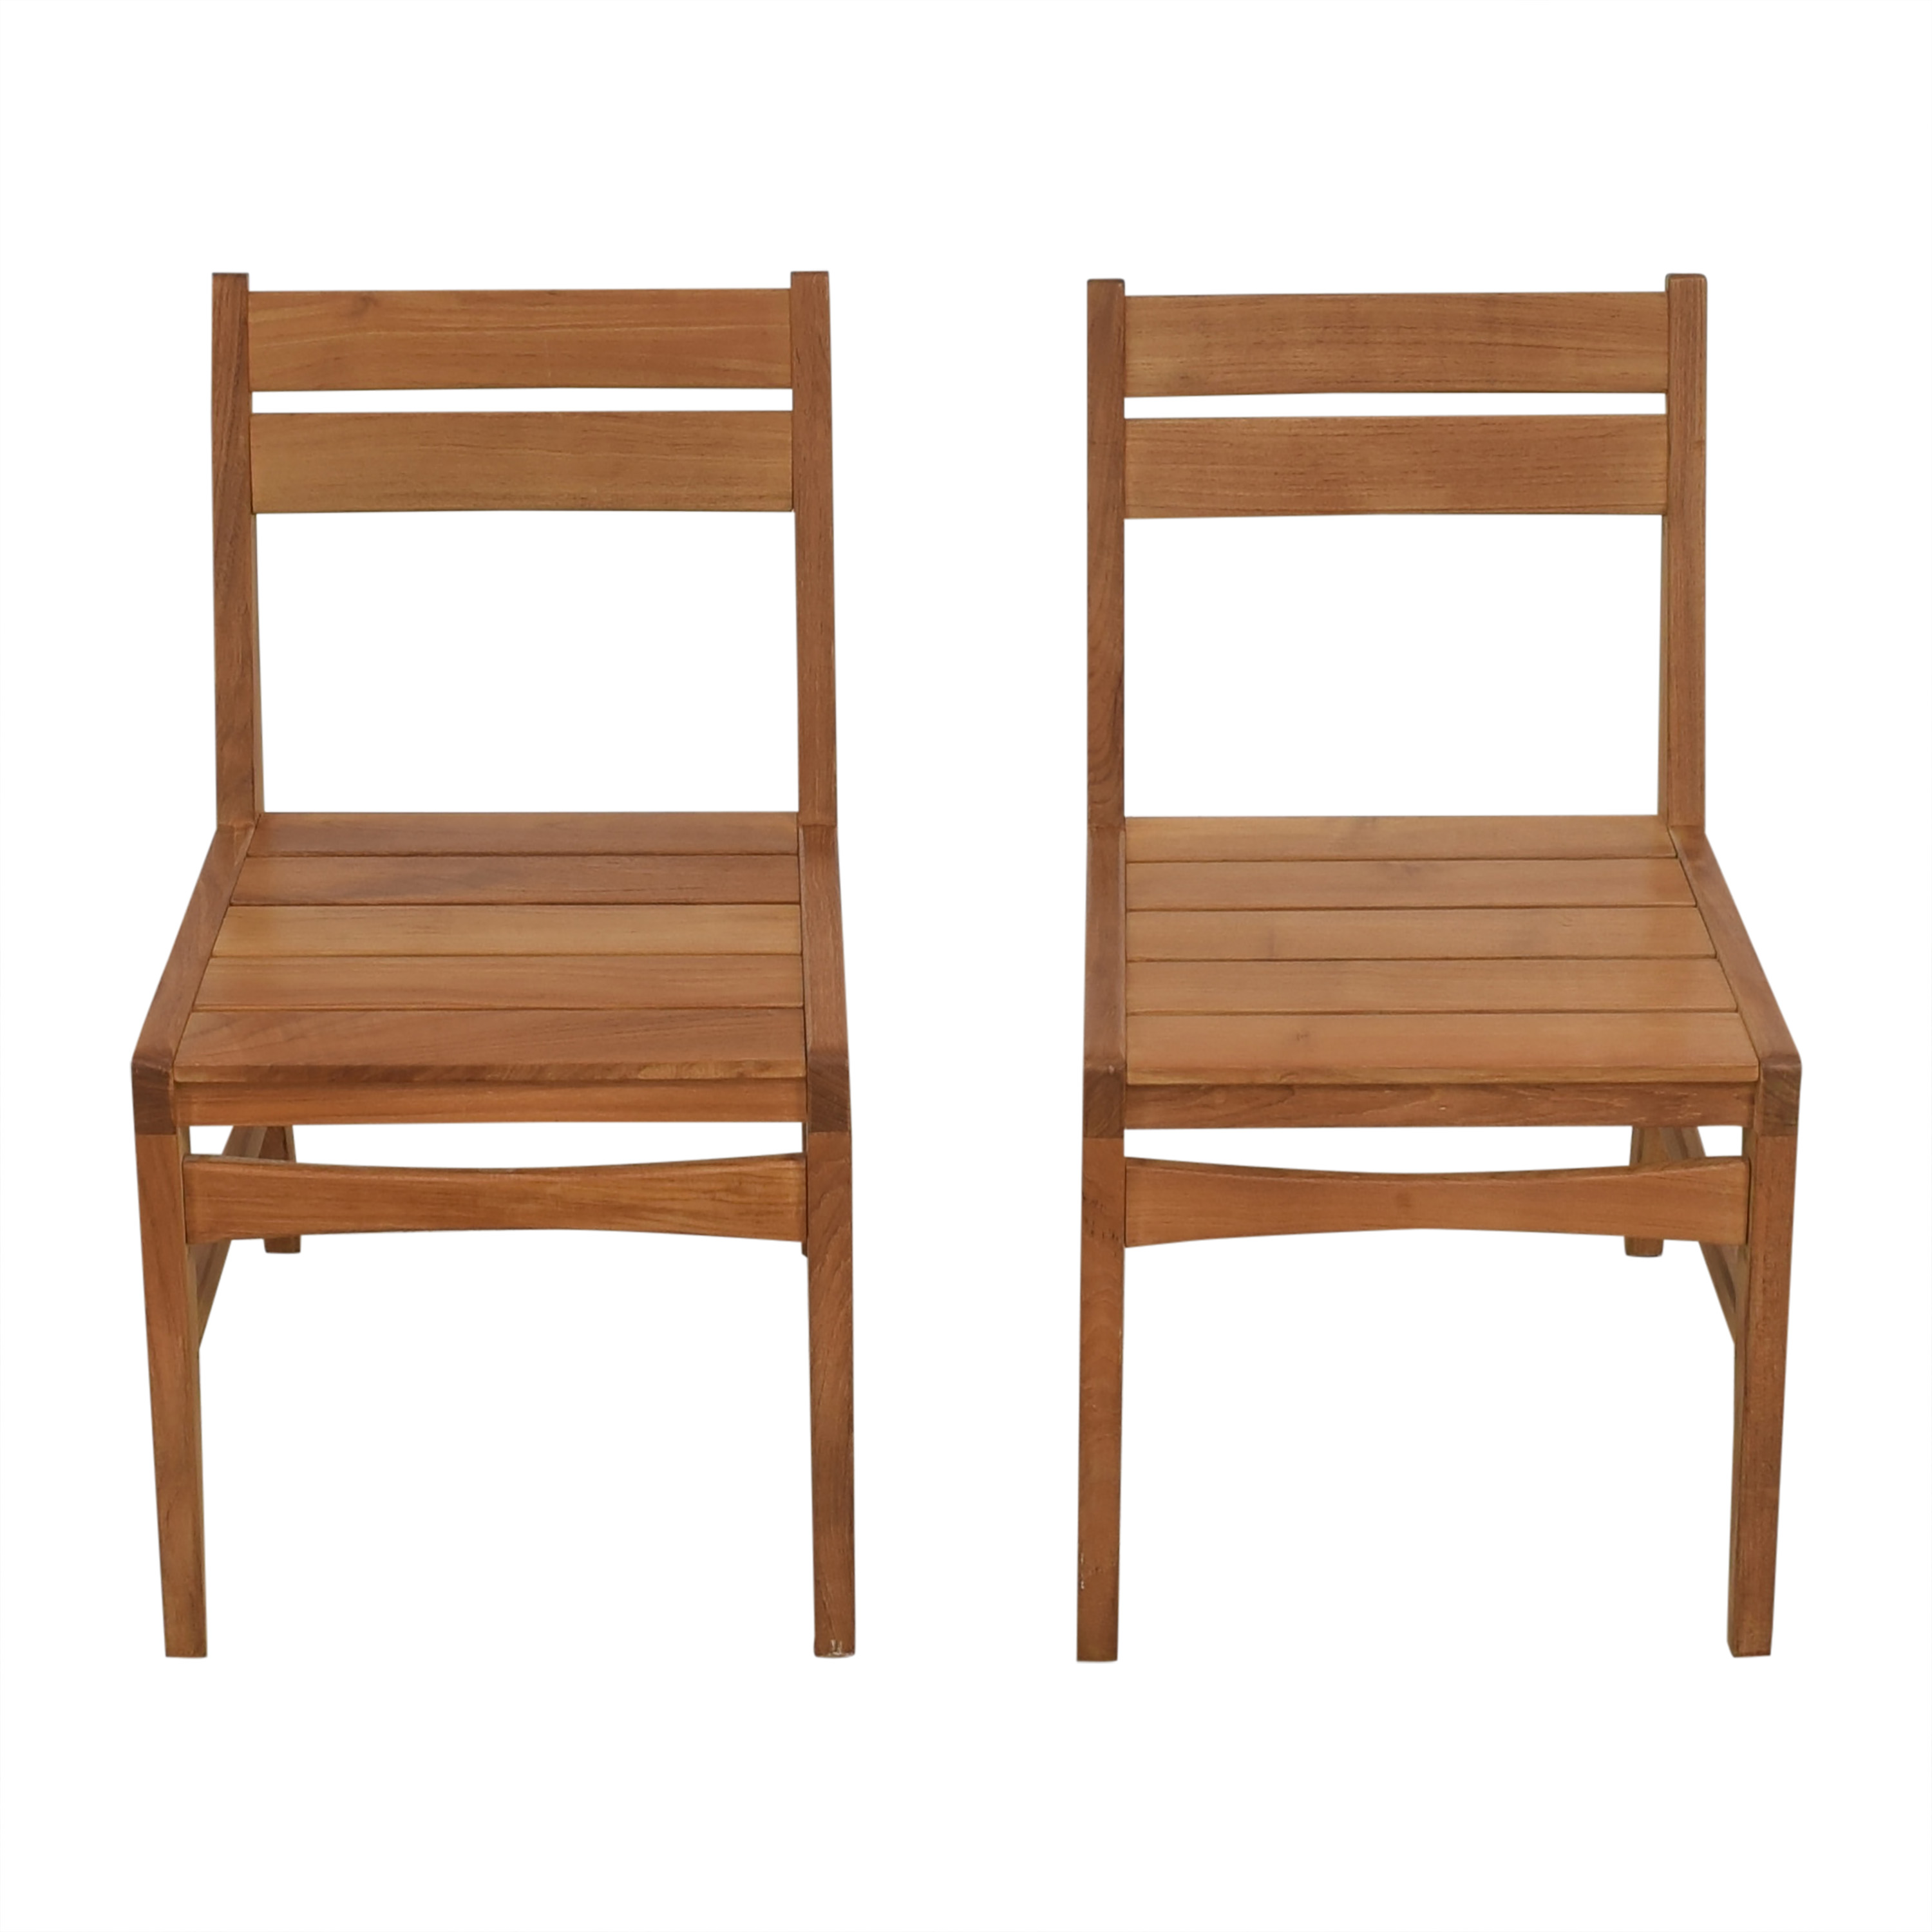 West Elm West Elm Mid-Century Outdoor Dining Chairs for sale